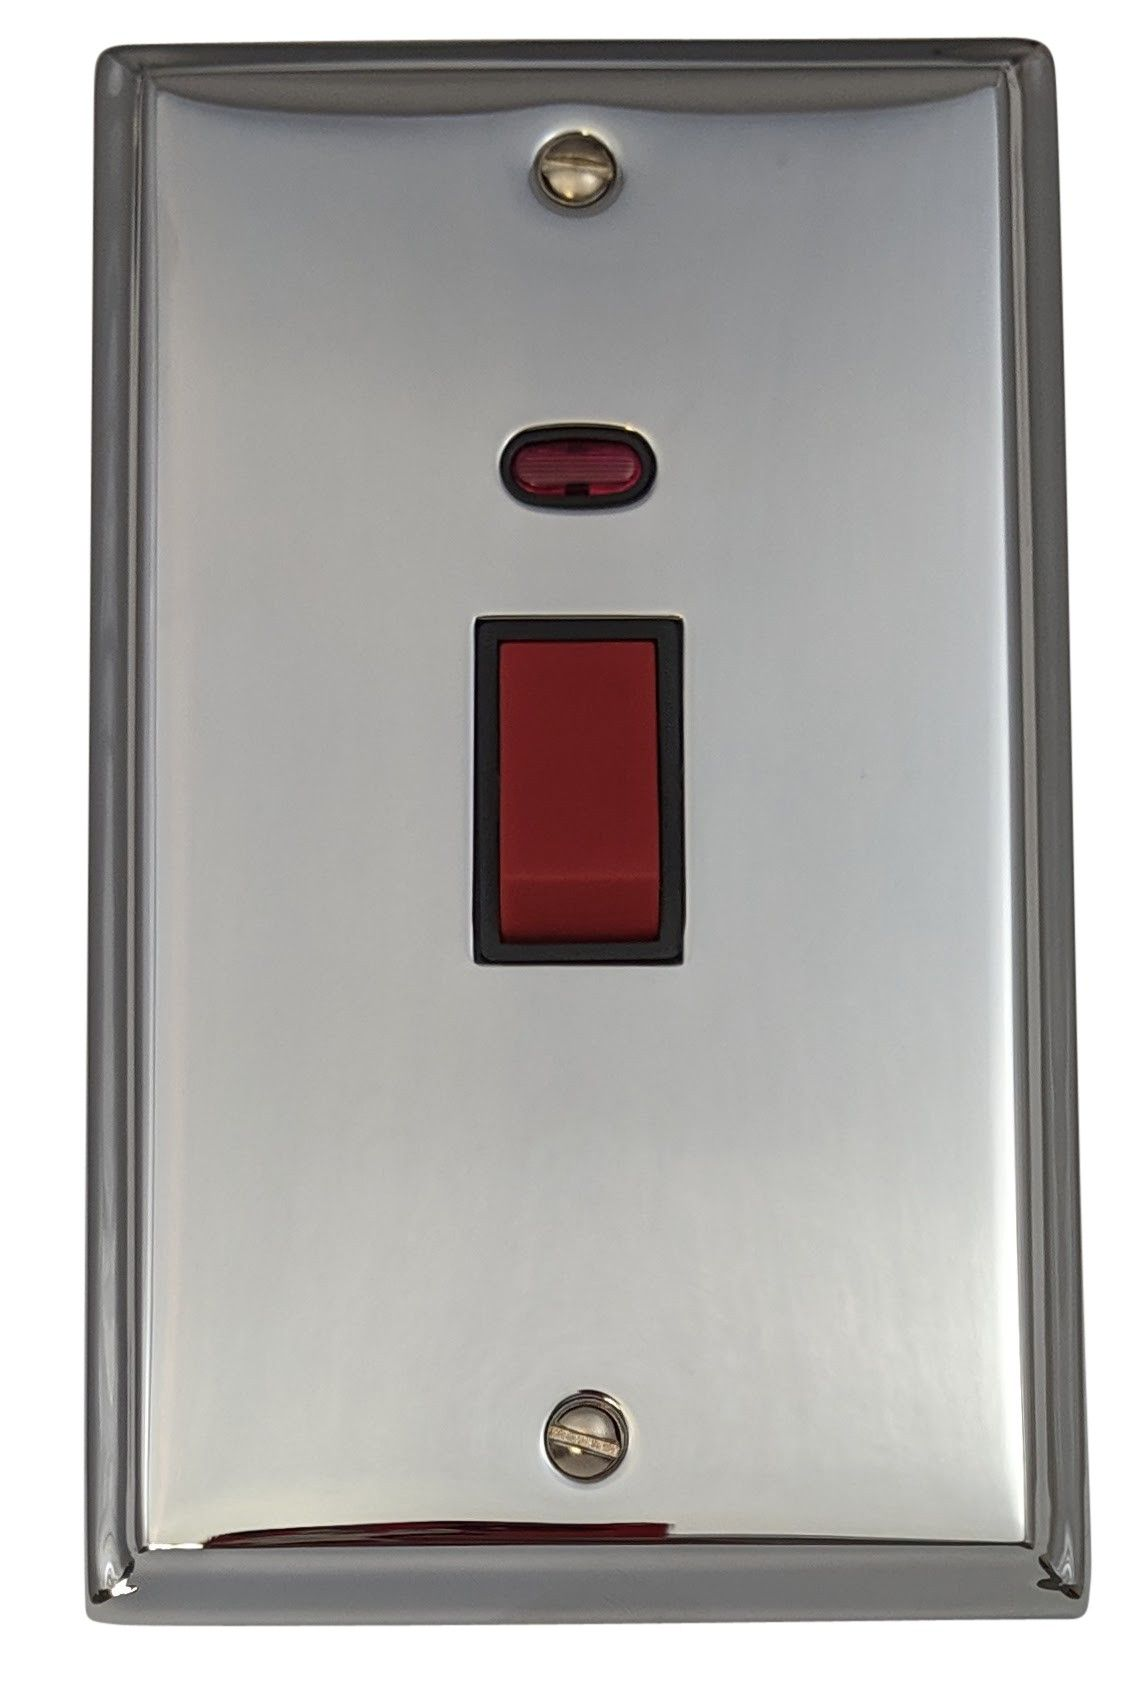 G&H DC28B Deco Plate Polished Chrome 45 Amp DP Cooker Switch & Neon Vertical Plate